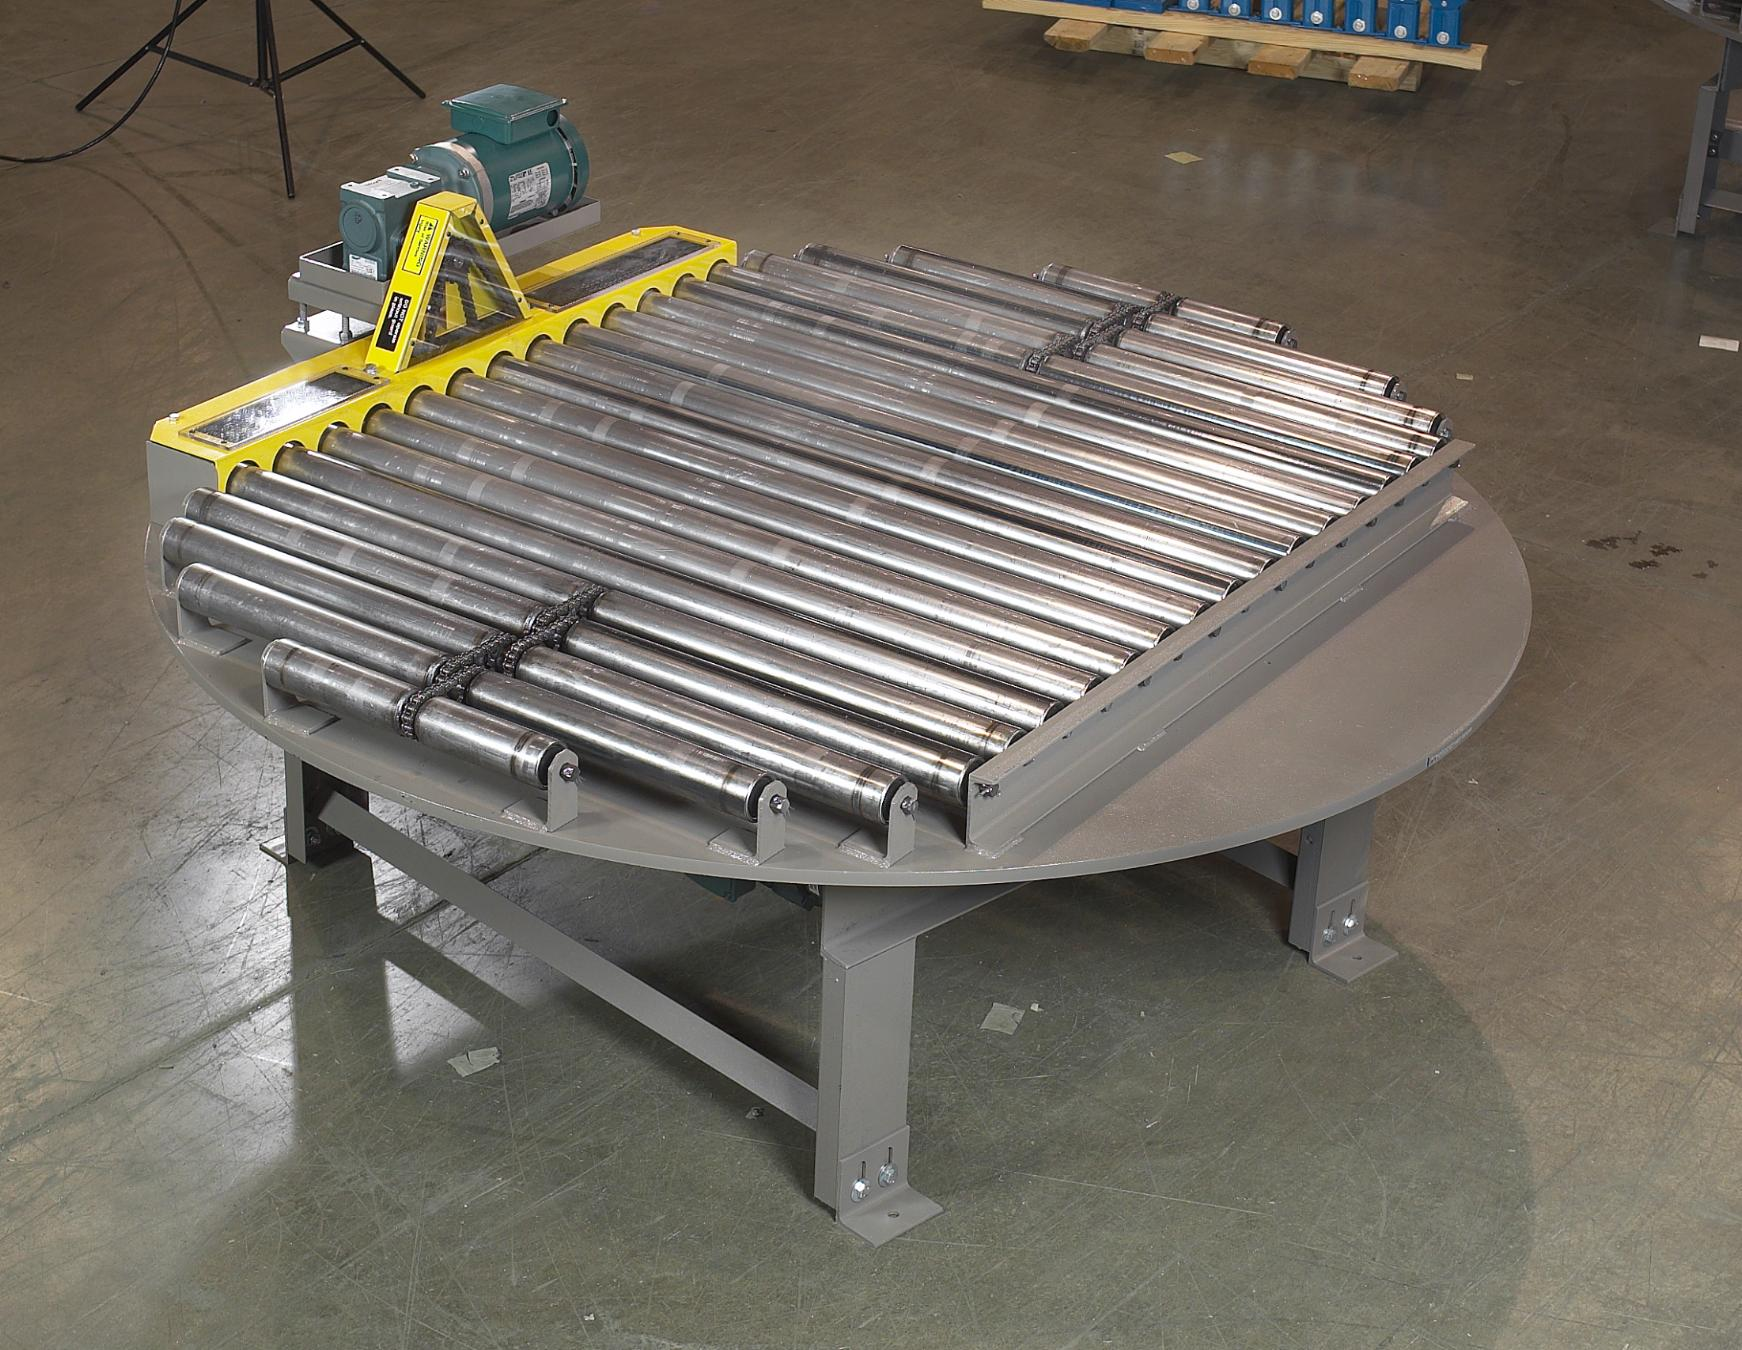 Pallet Turntable With Rollers Related Keywords & Suggestions